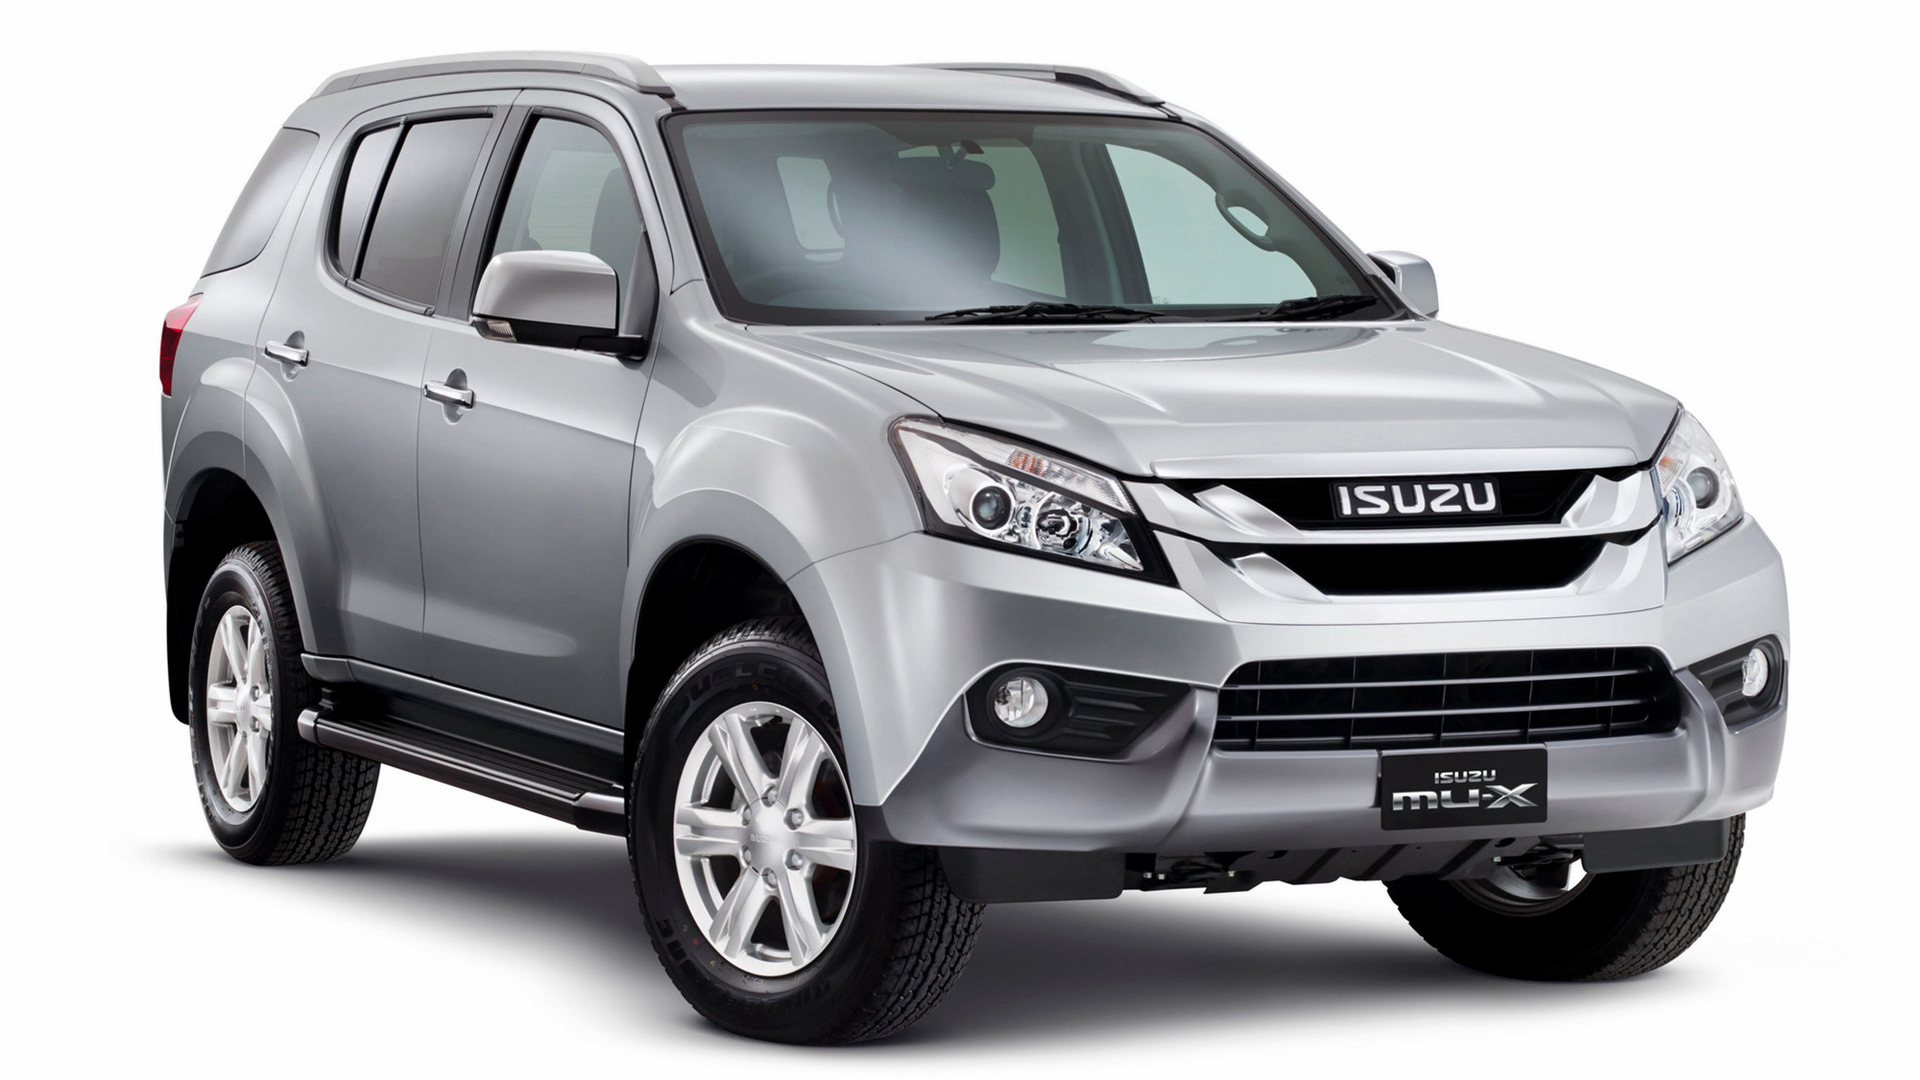 Isuzu Mu X 2013 Wallpapers And Hd Images Car Pixel